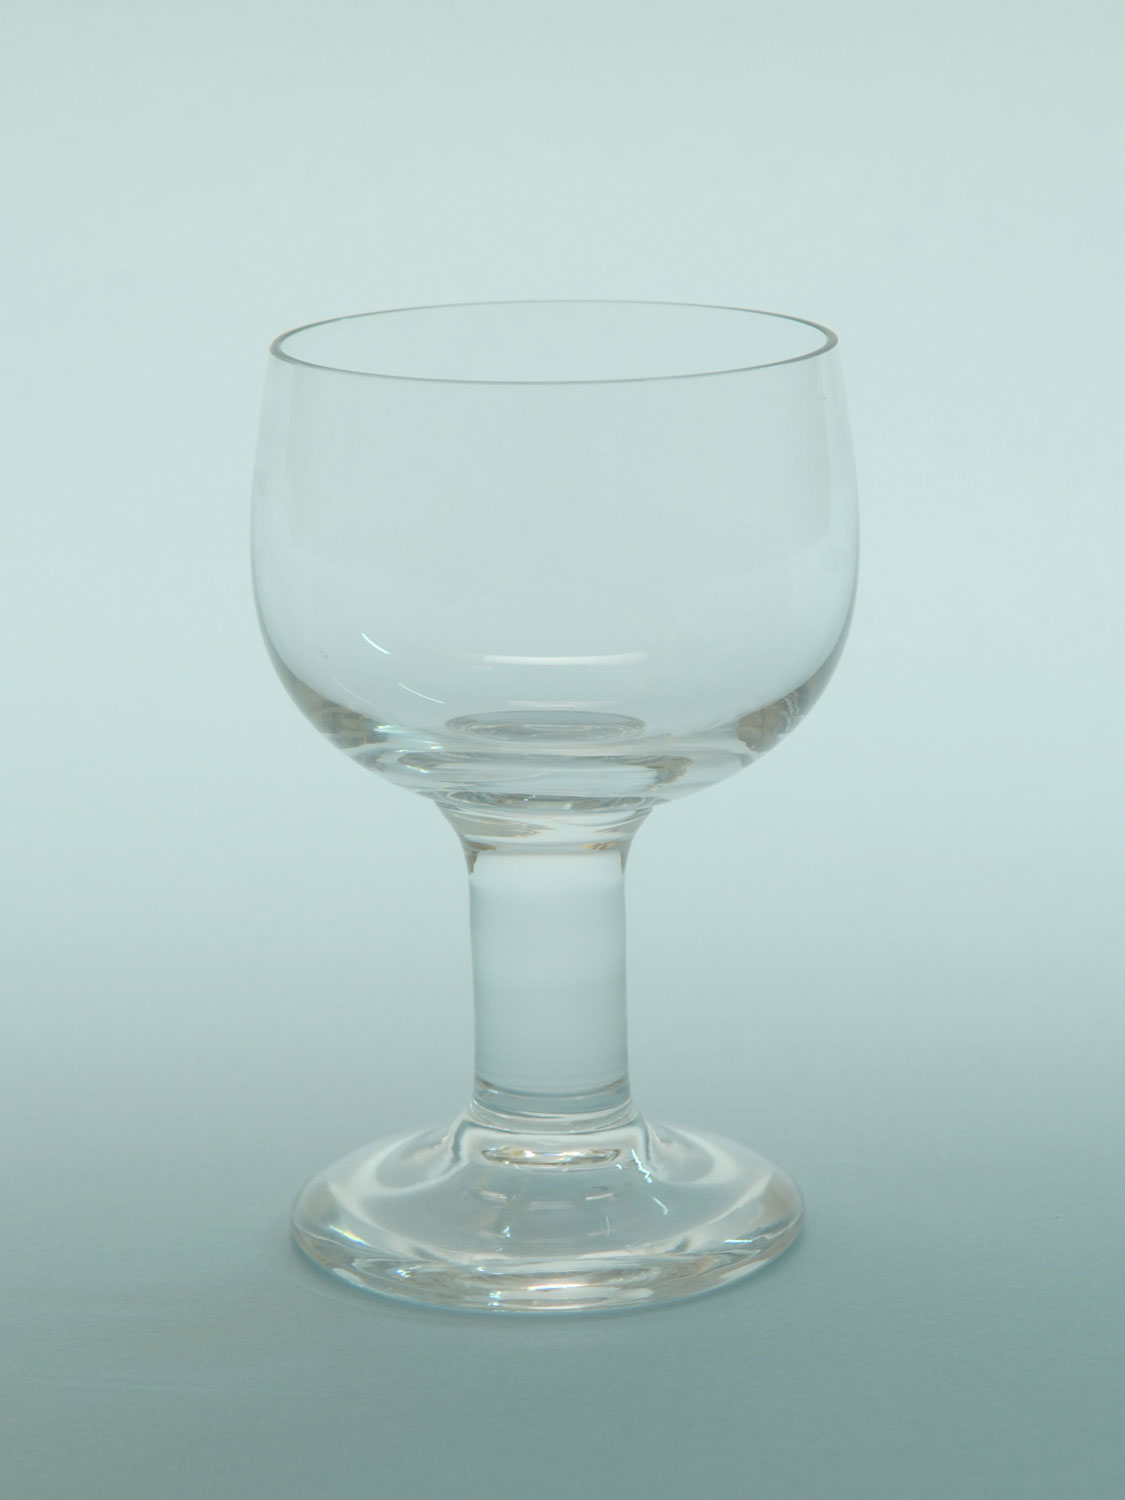 Sugar glass breakaway wine glass, short stem. Size: 12 x 8 Cm.